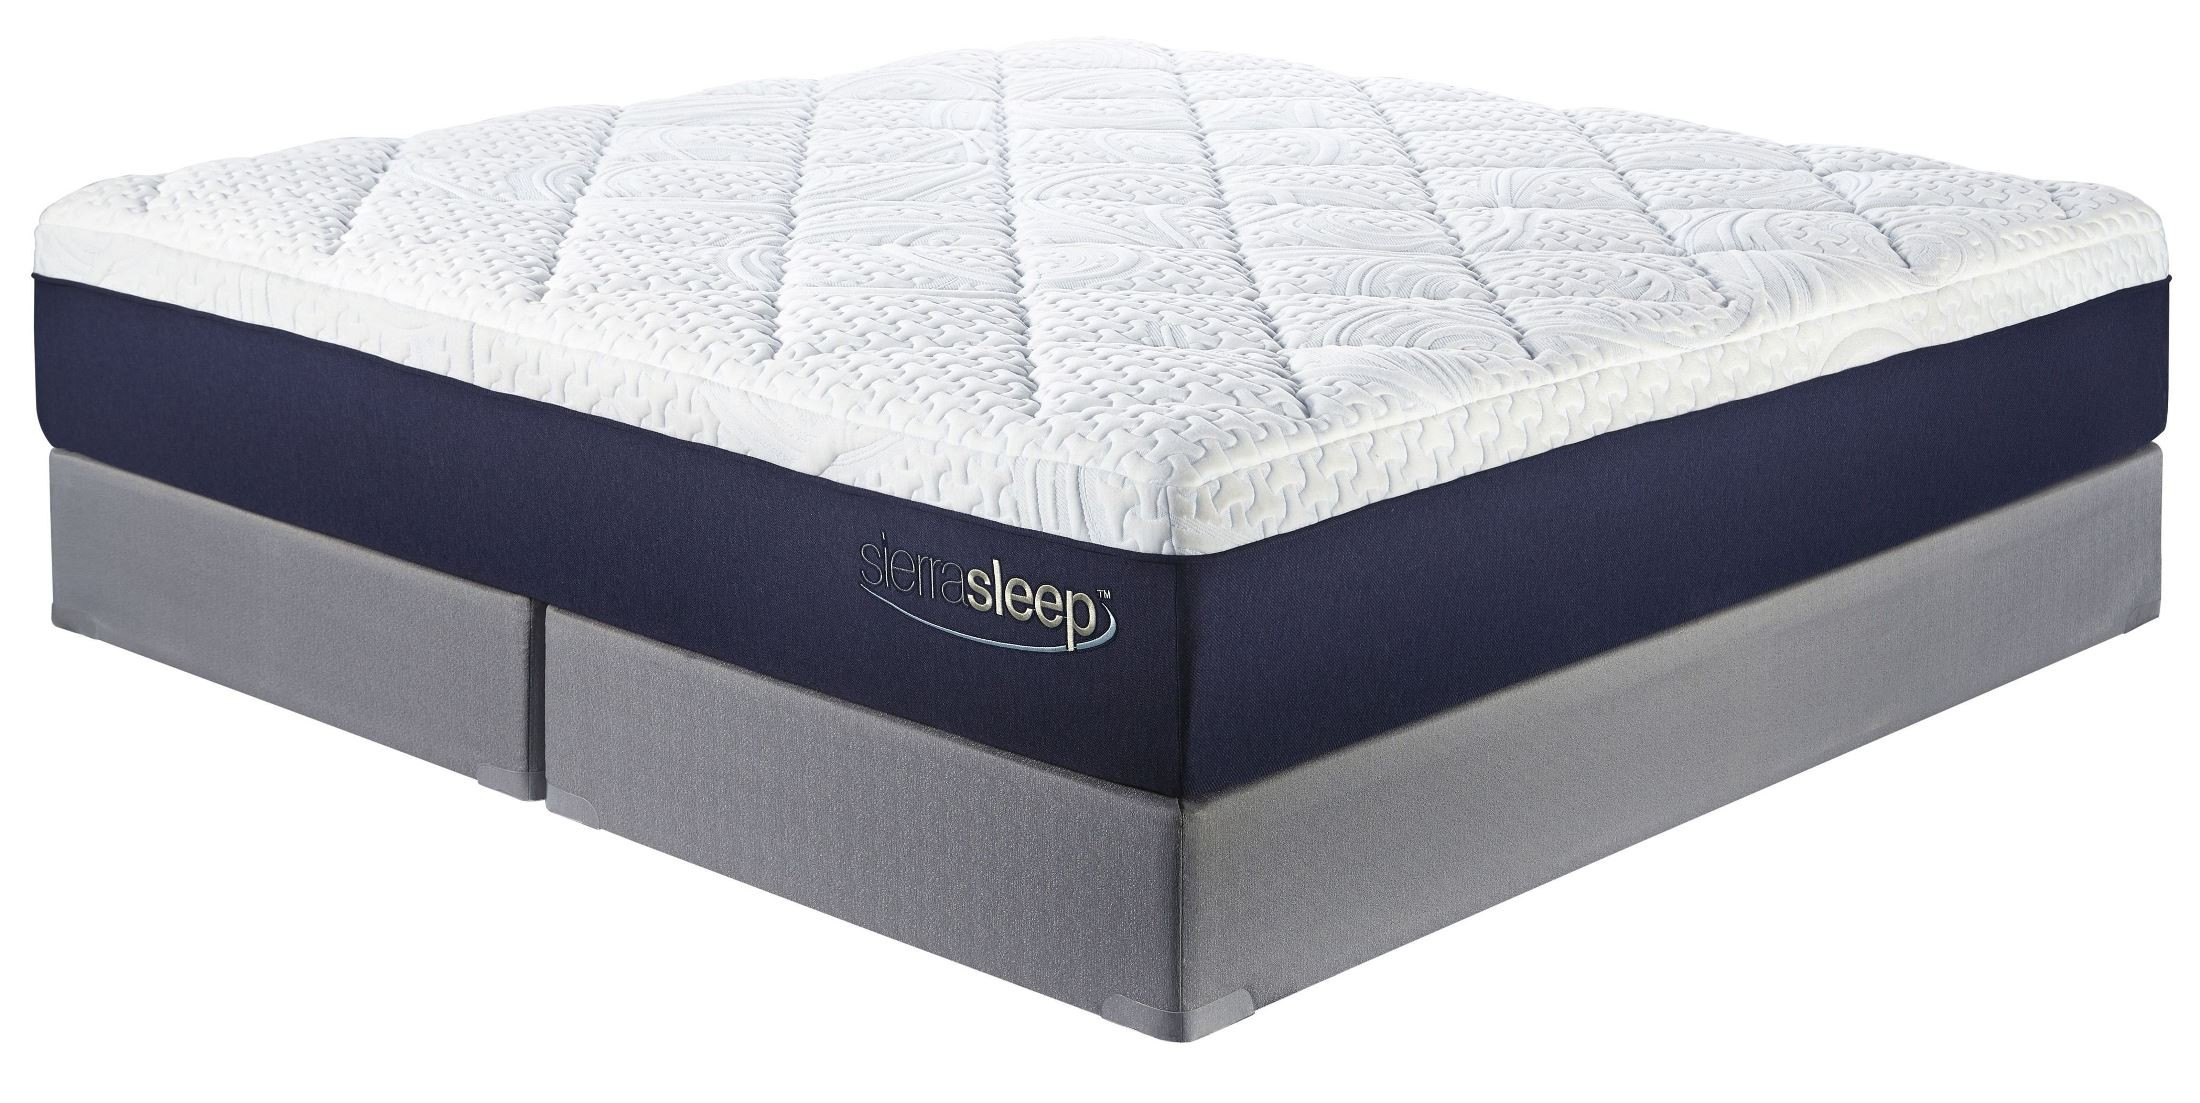 Mattress Foundation 13 Inch Gel Memory Foam White Cal. King Mattress With